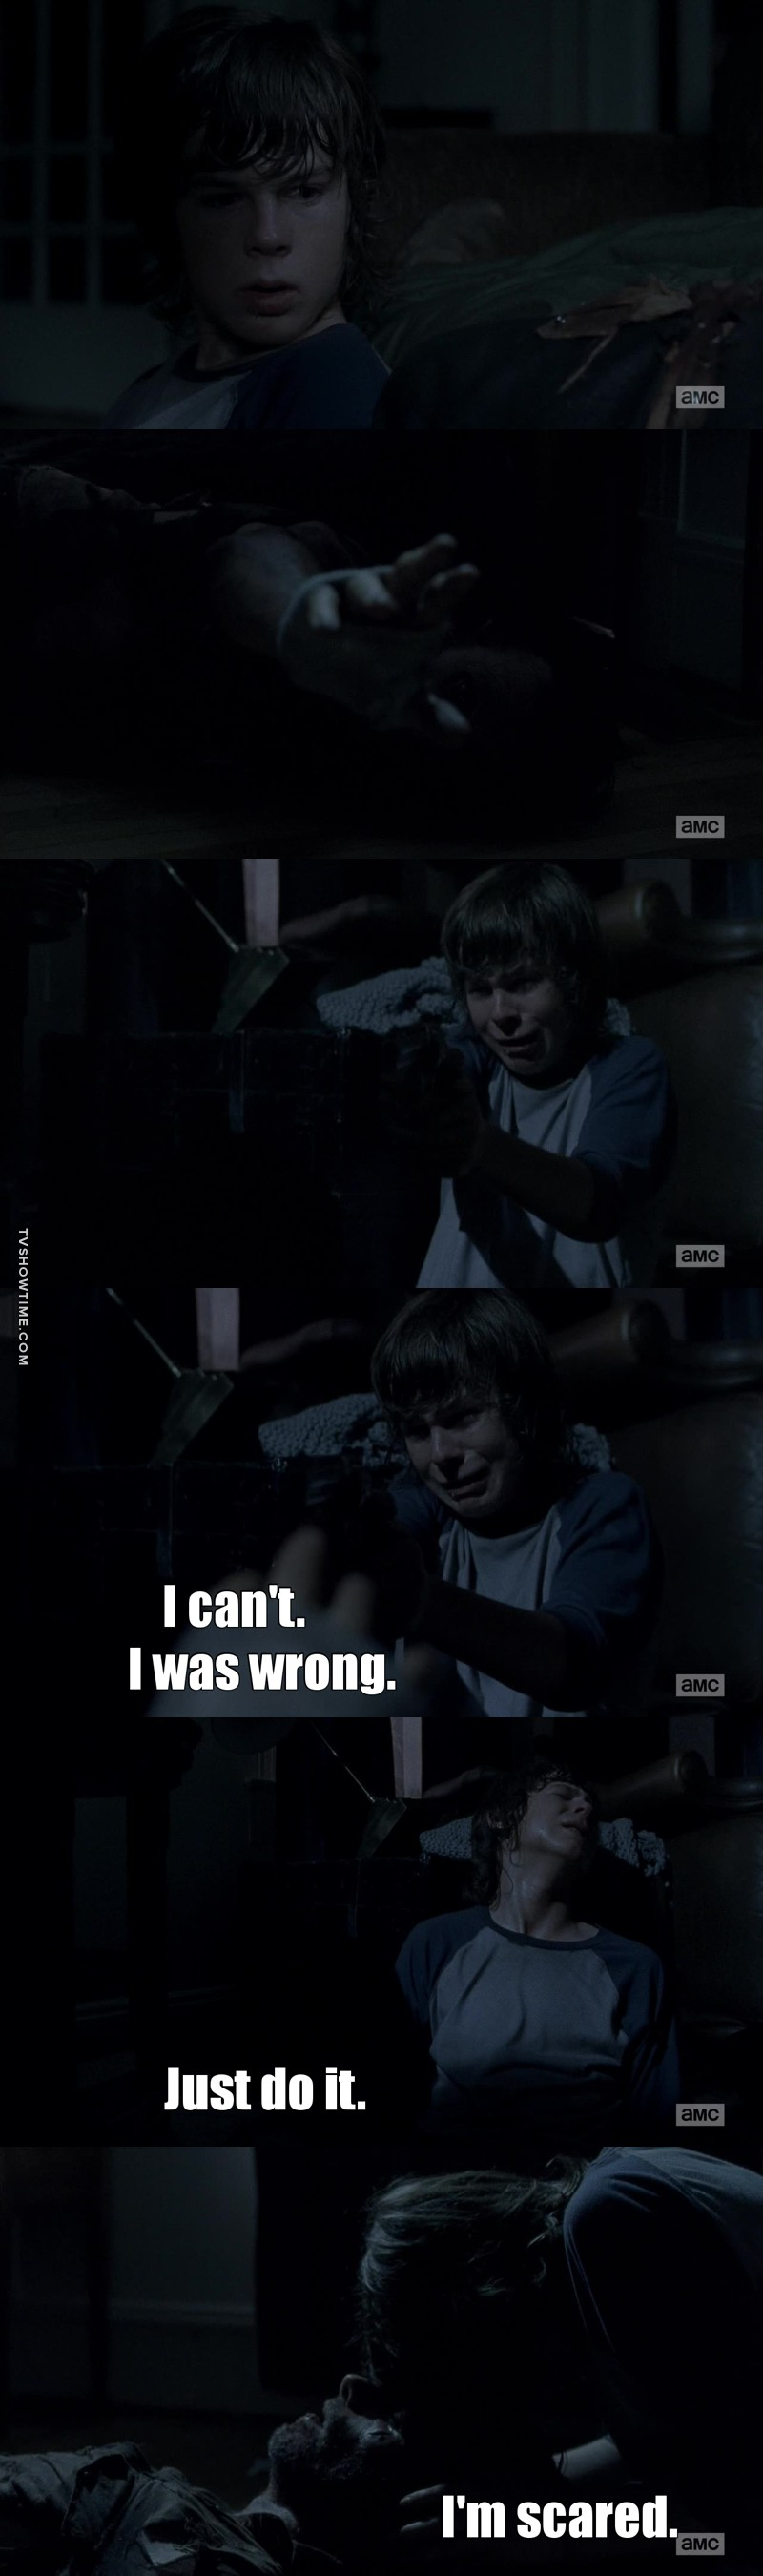 This scene broke my heart 😭😭😭😭. Poor Carl he couldn't do it😭. He couldn't live in a world without his father in it 😢💔